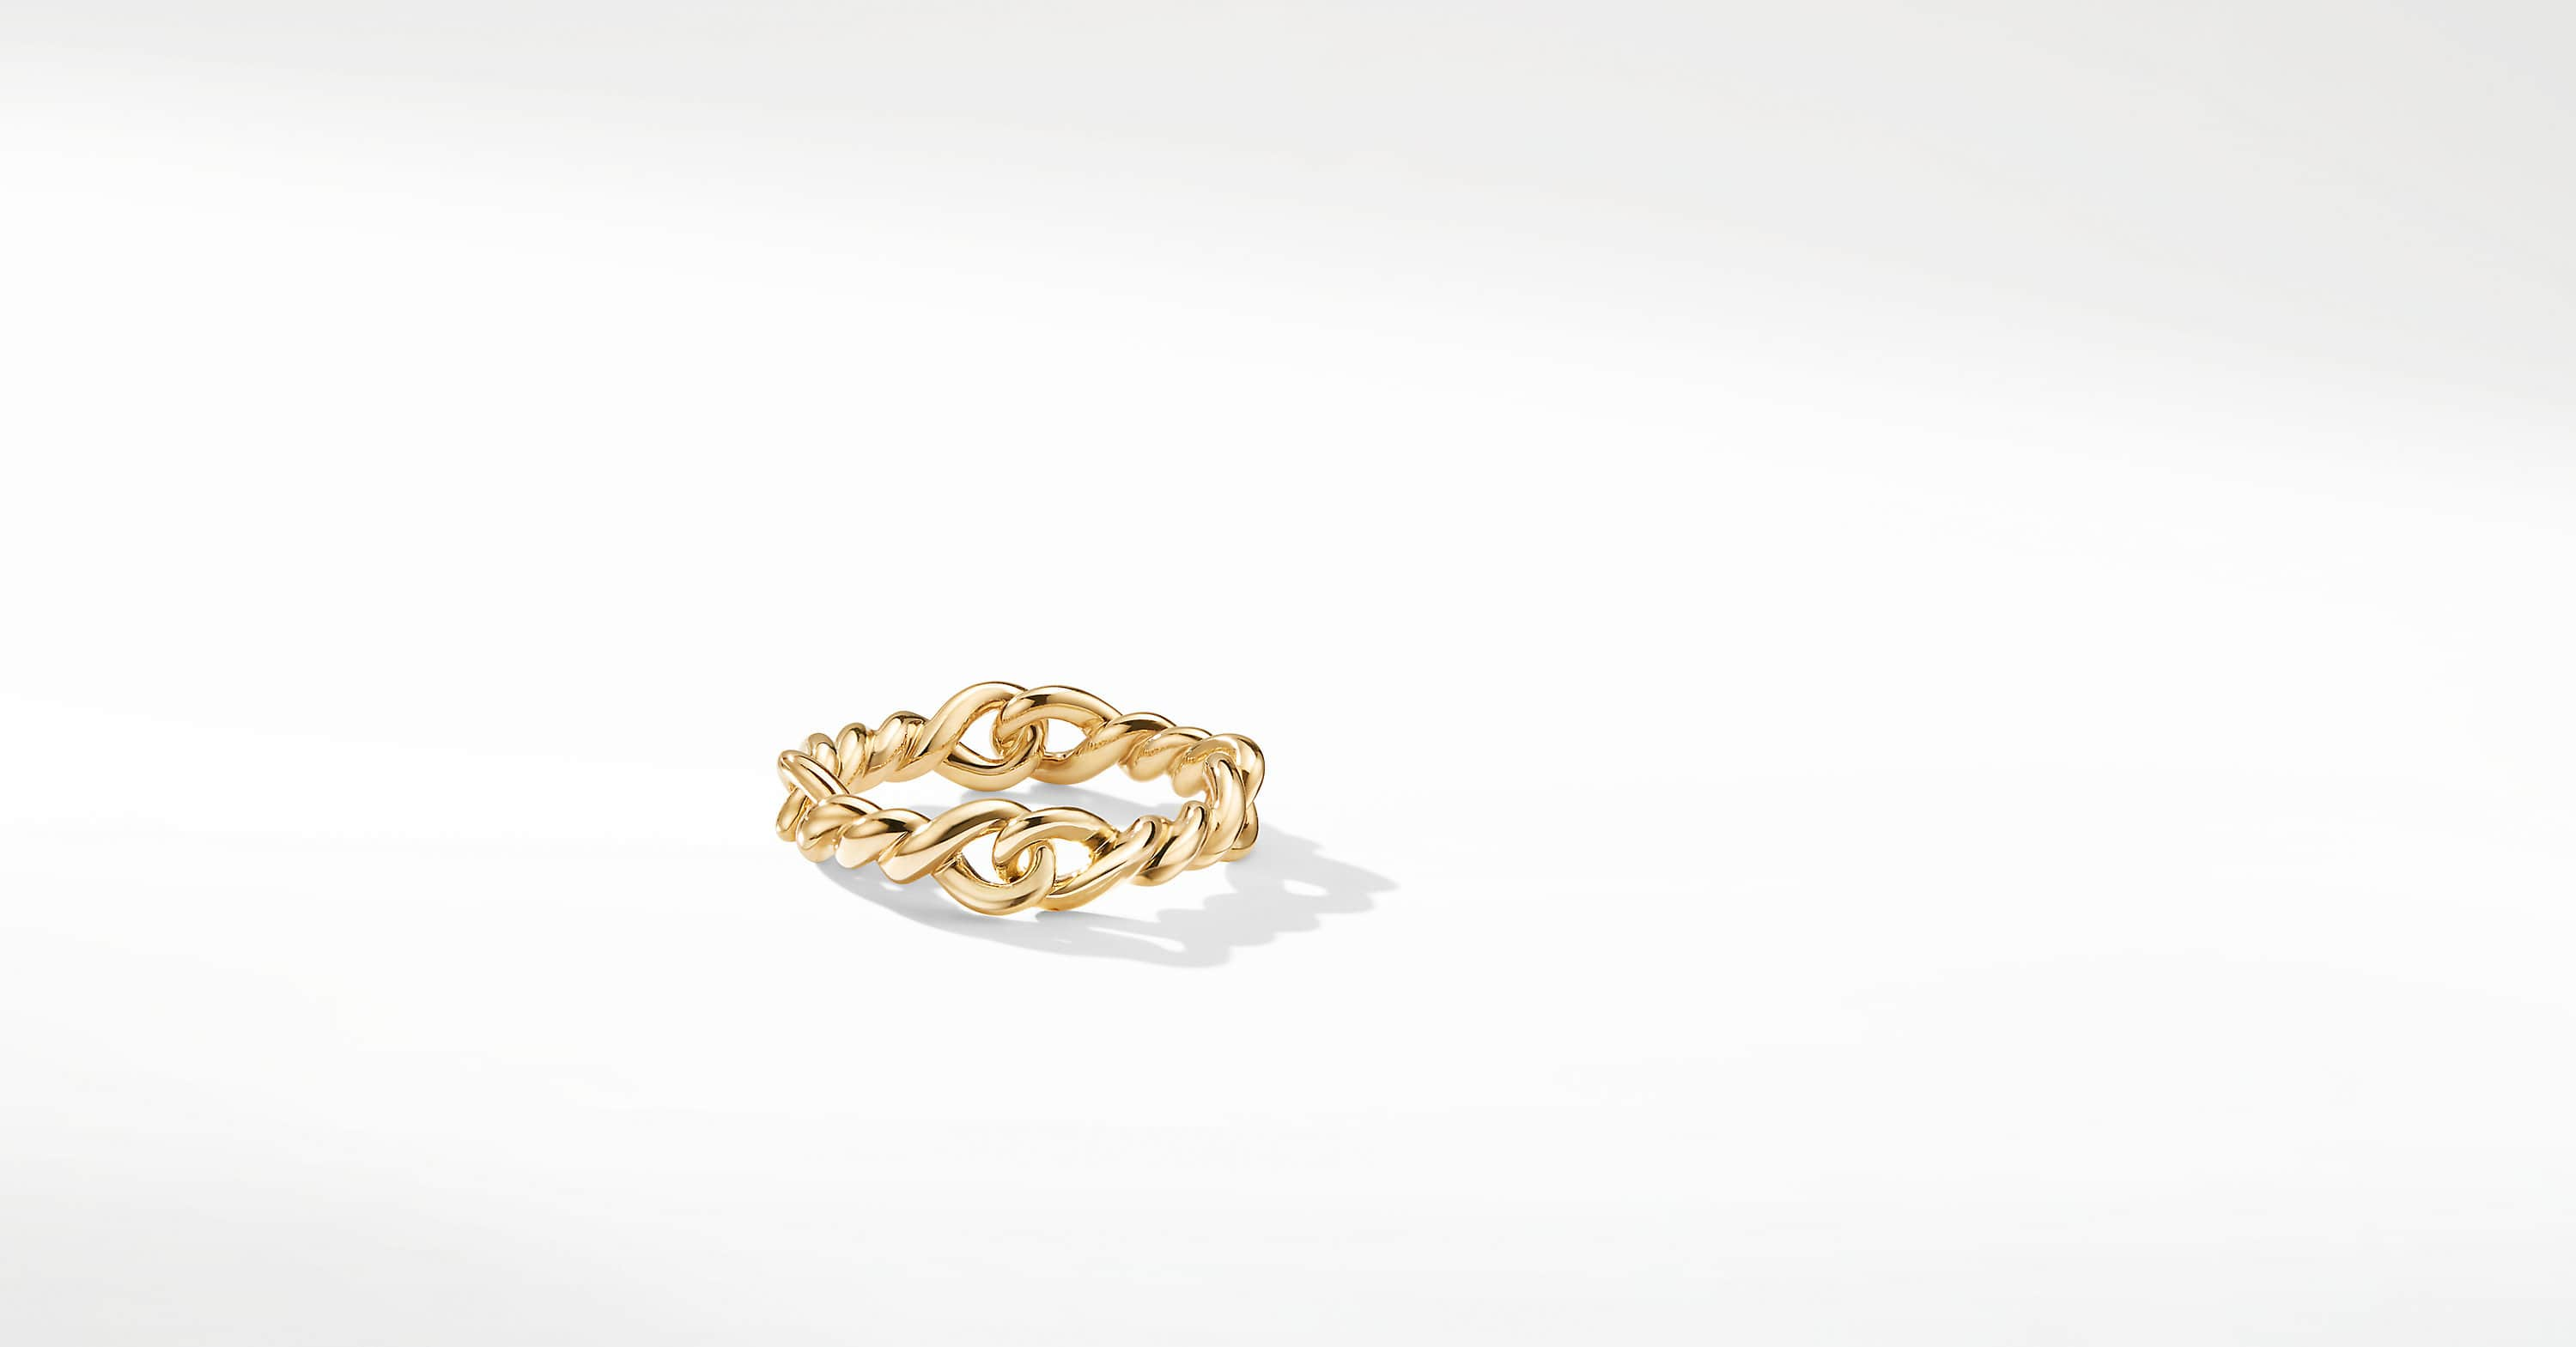 Continuance Ring in 18K Gold, 5mm